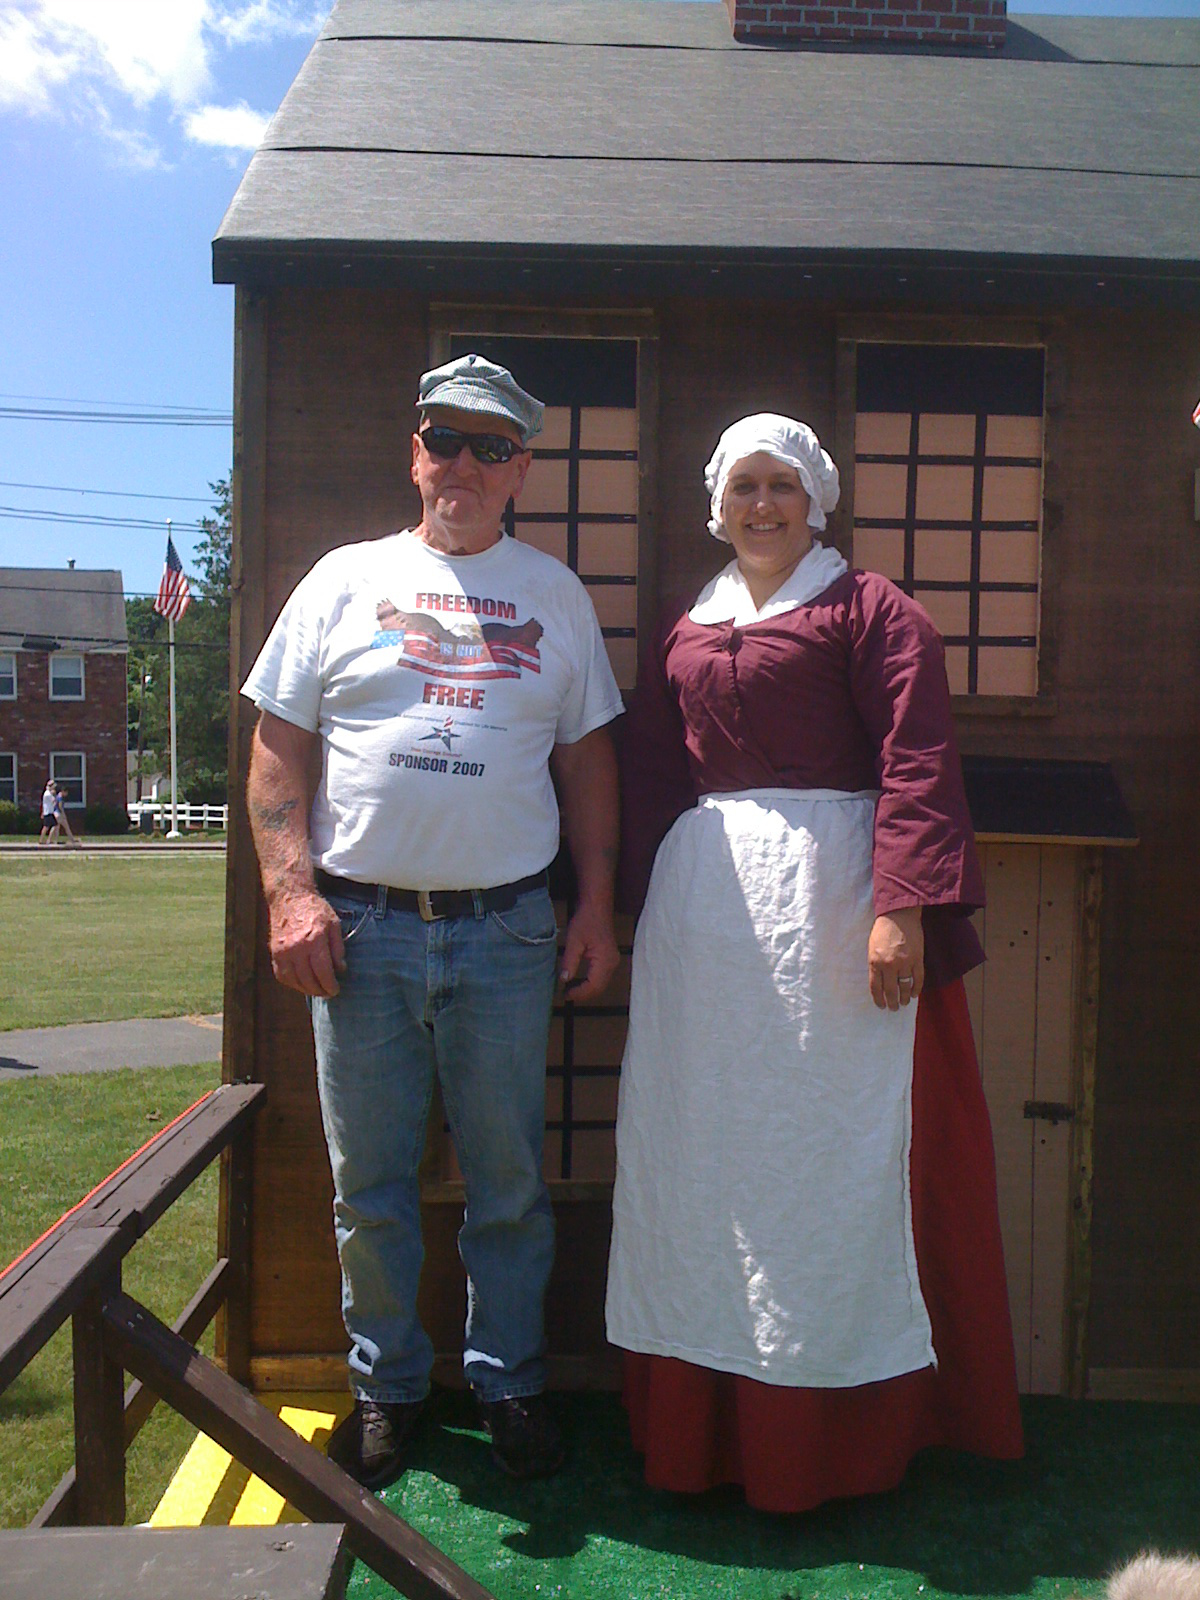 Rebecca poses with Fred Keene, our float builder